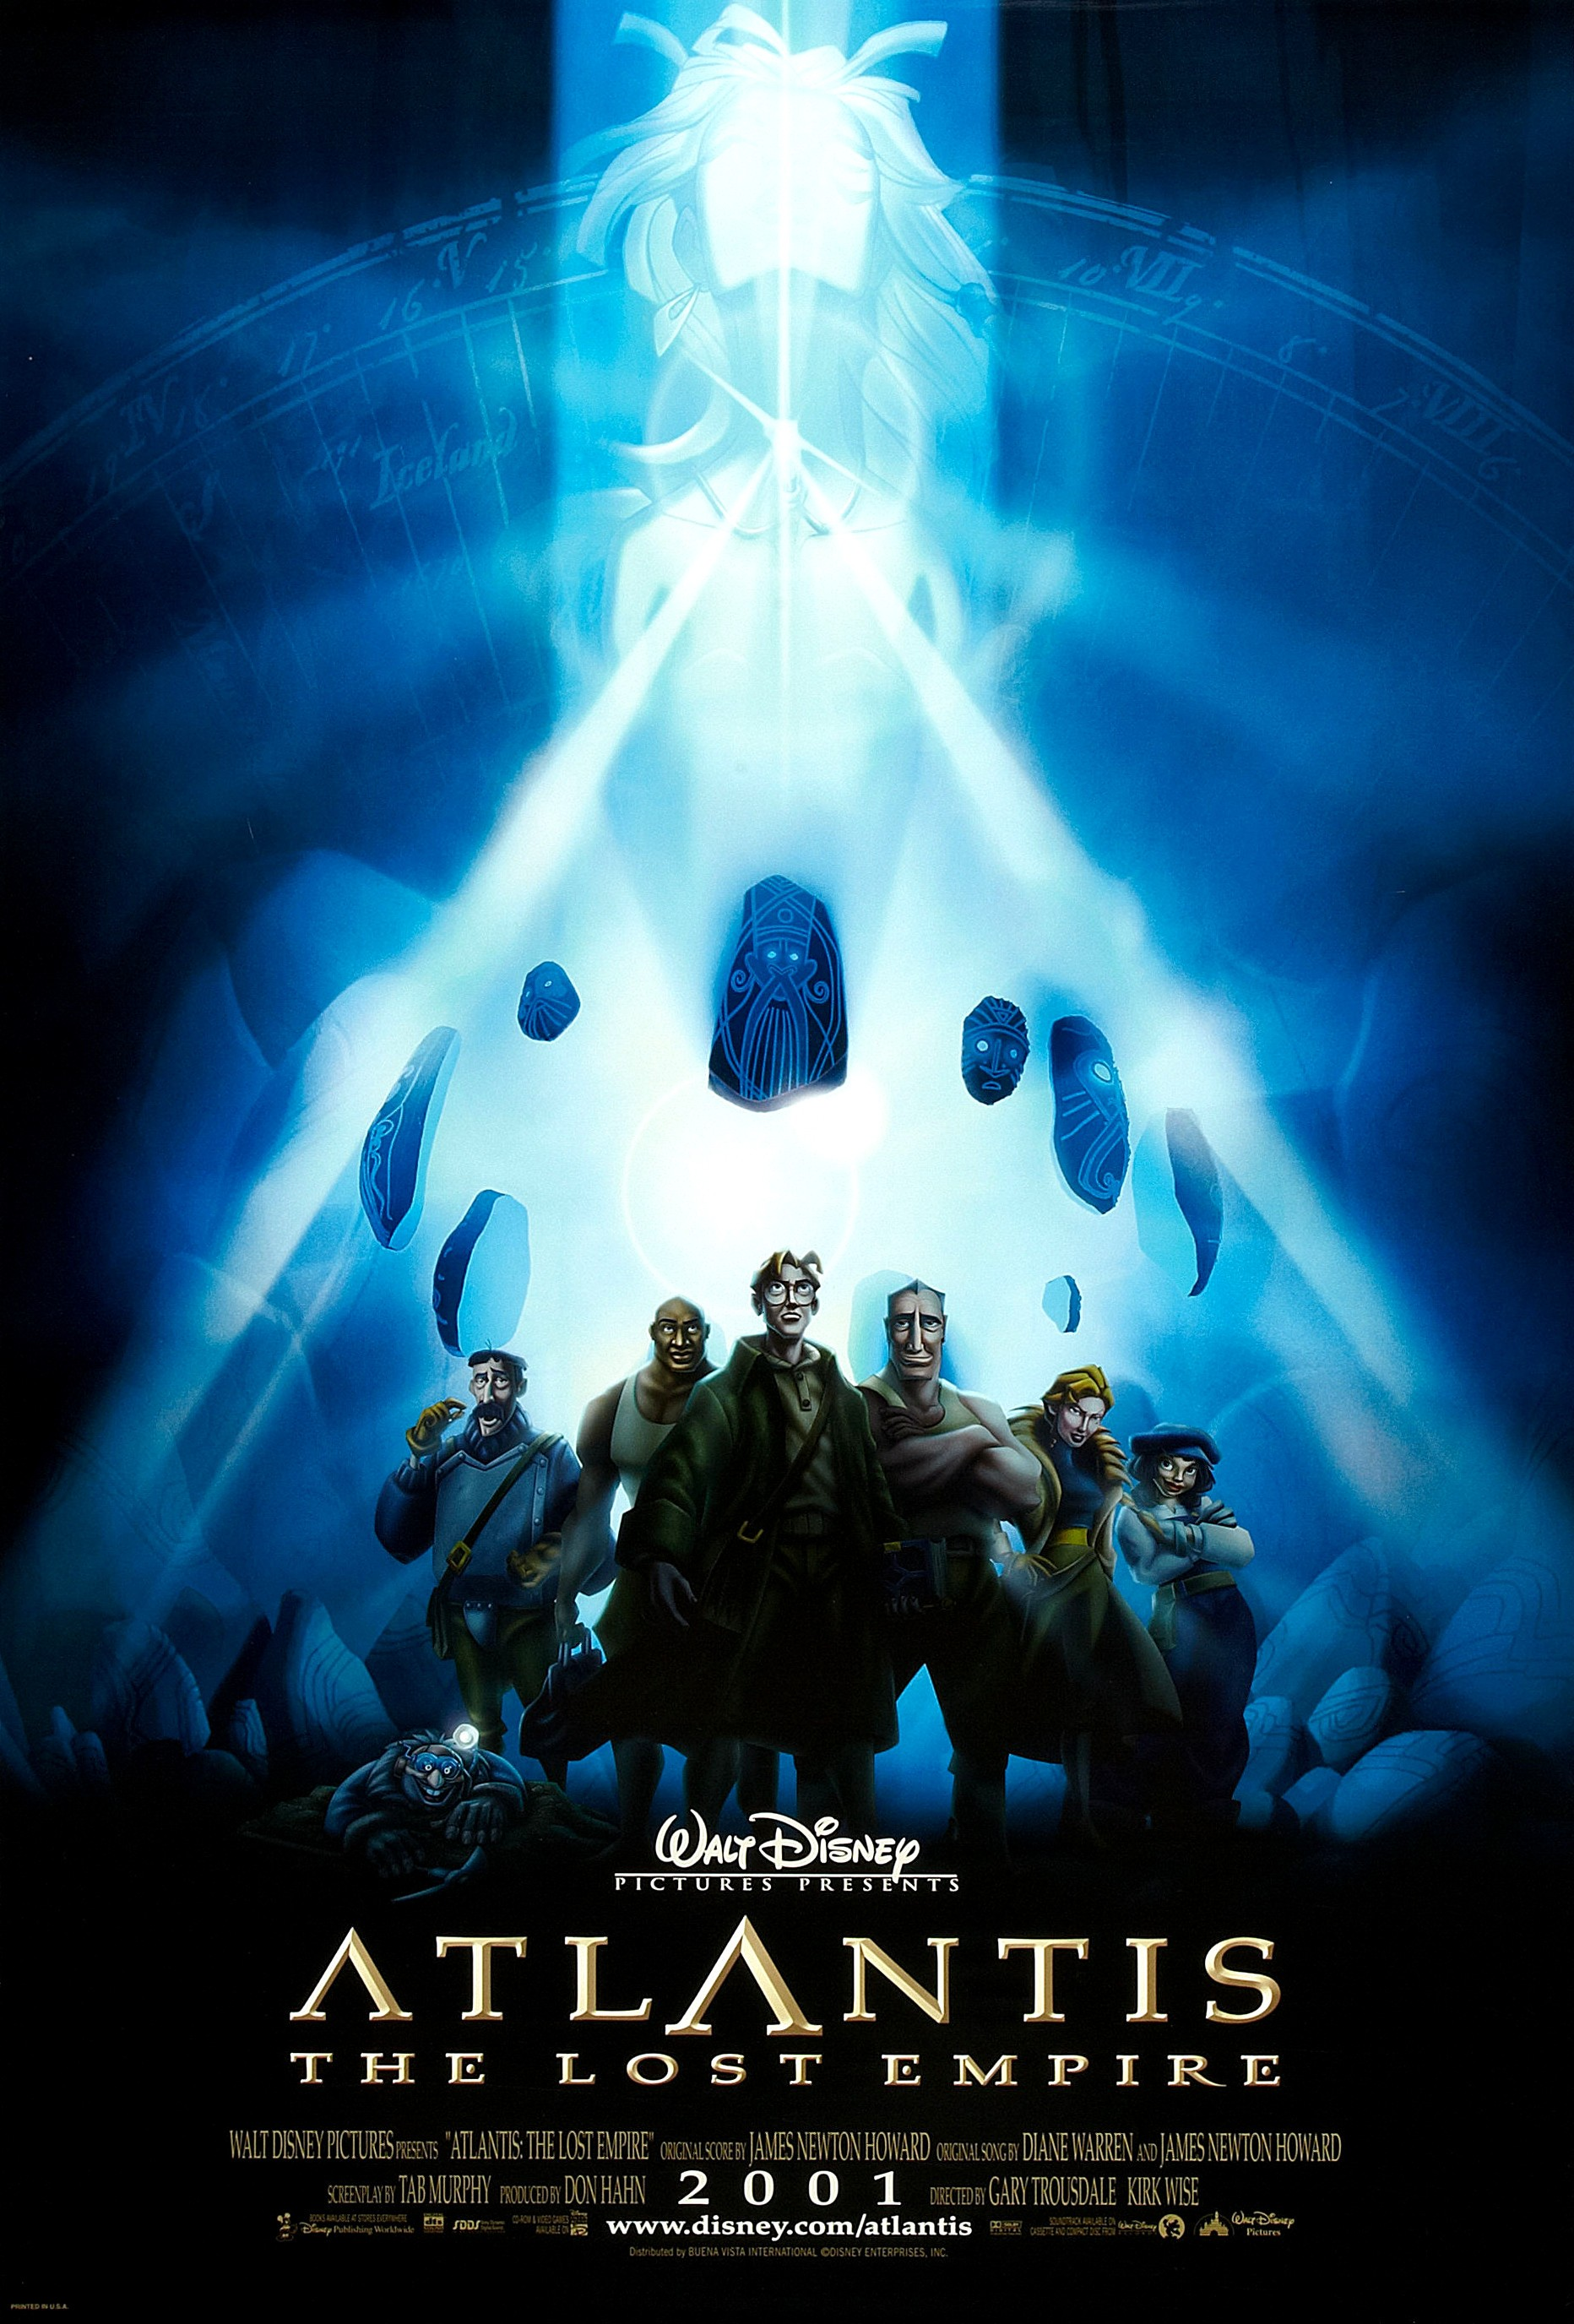 Atlantis - The Lost Empire theatrical poster